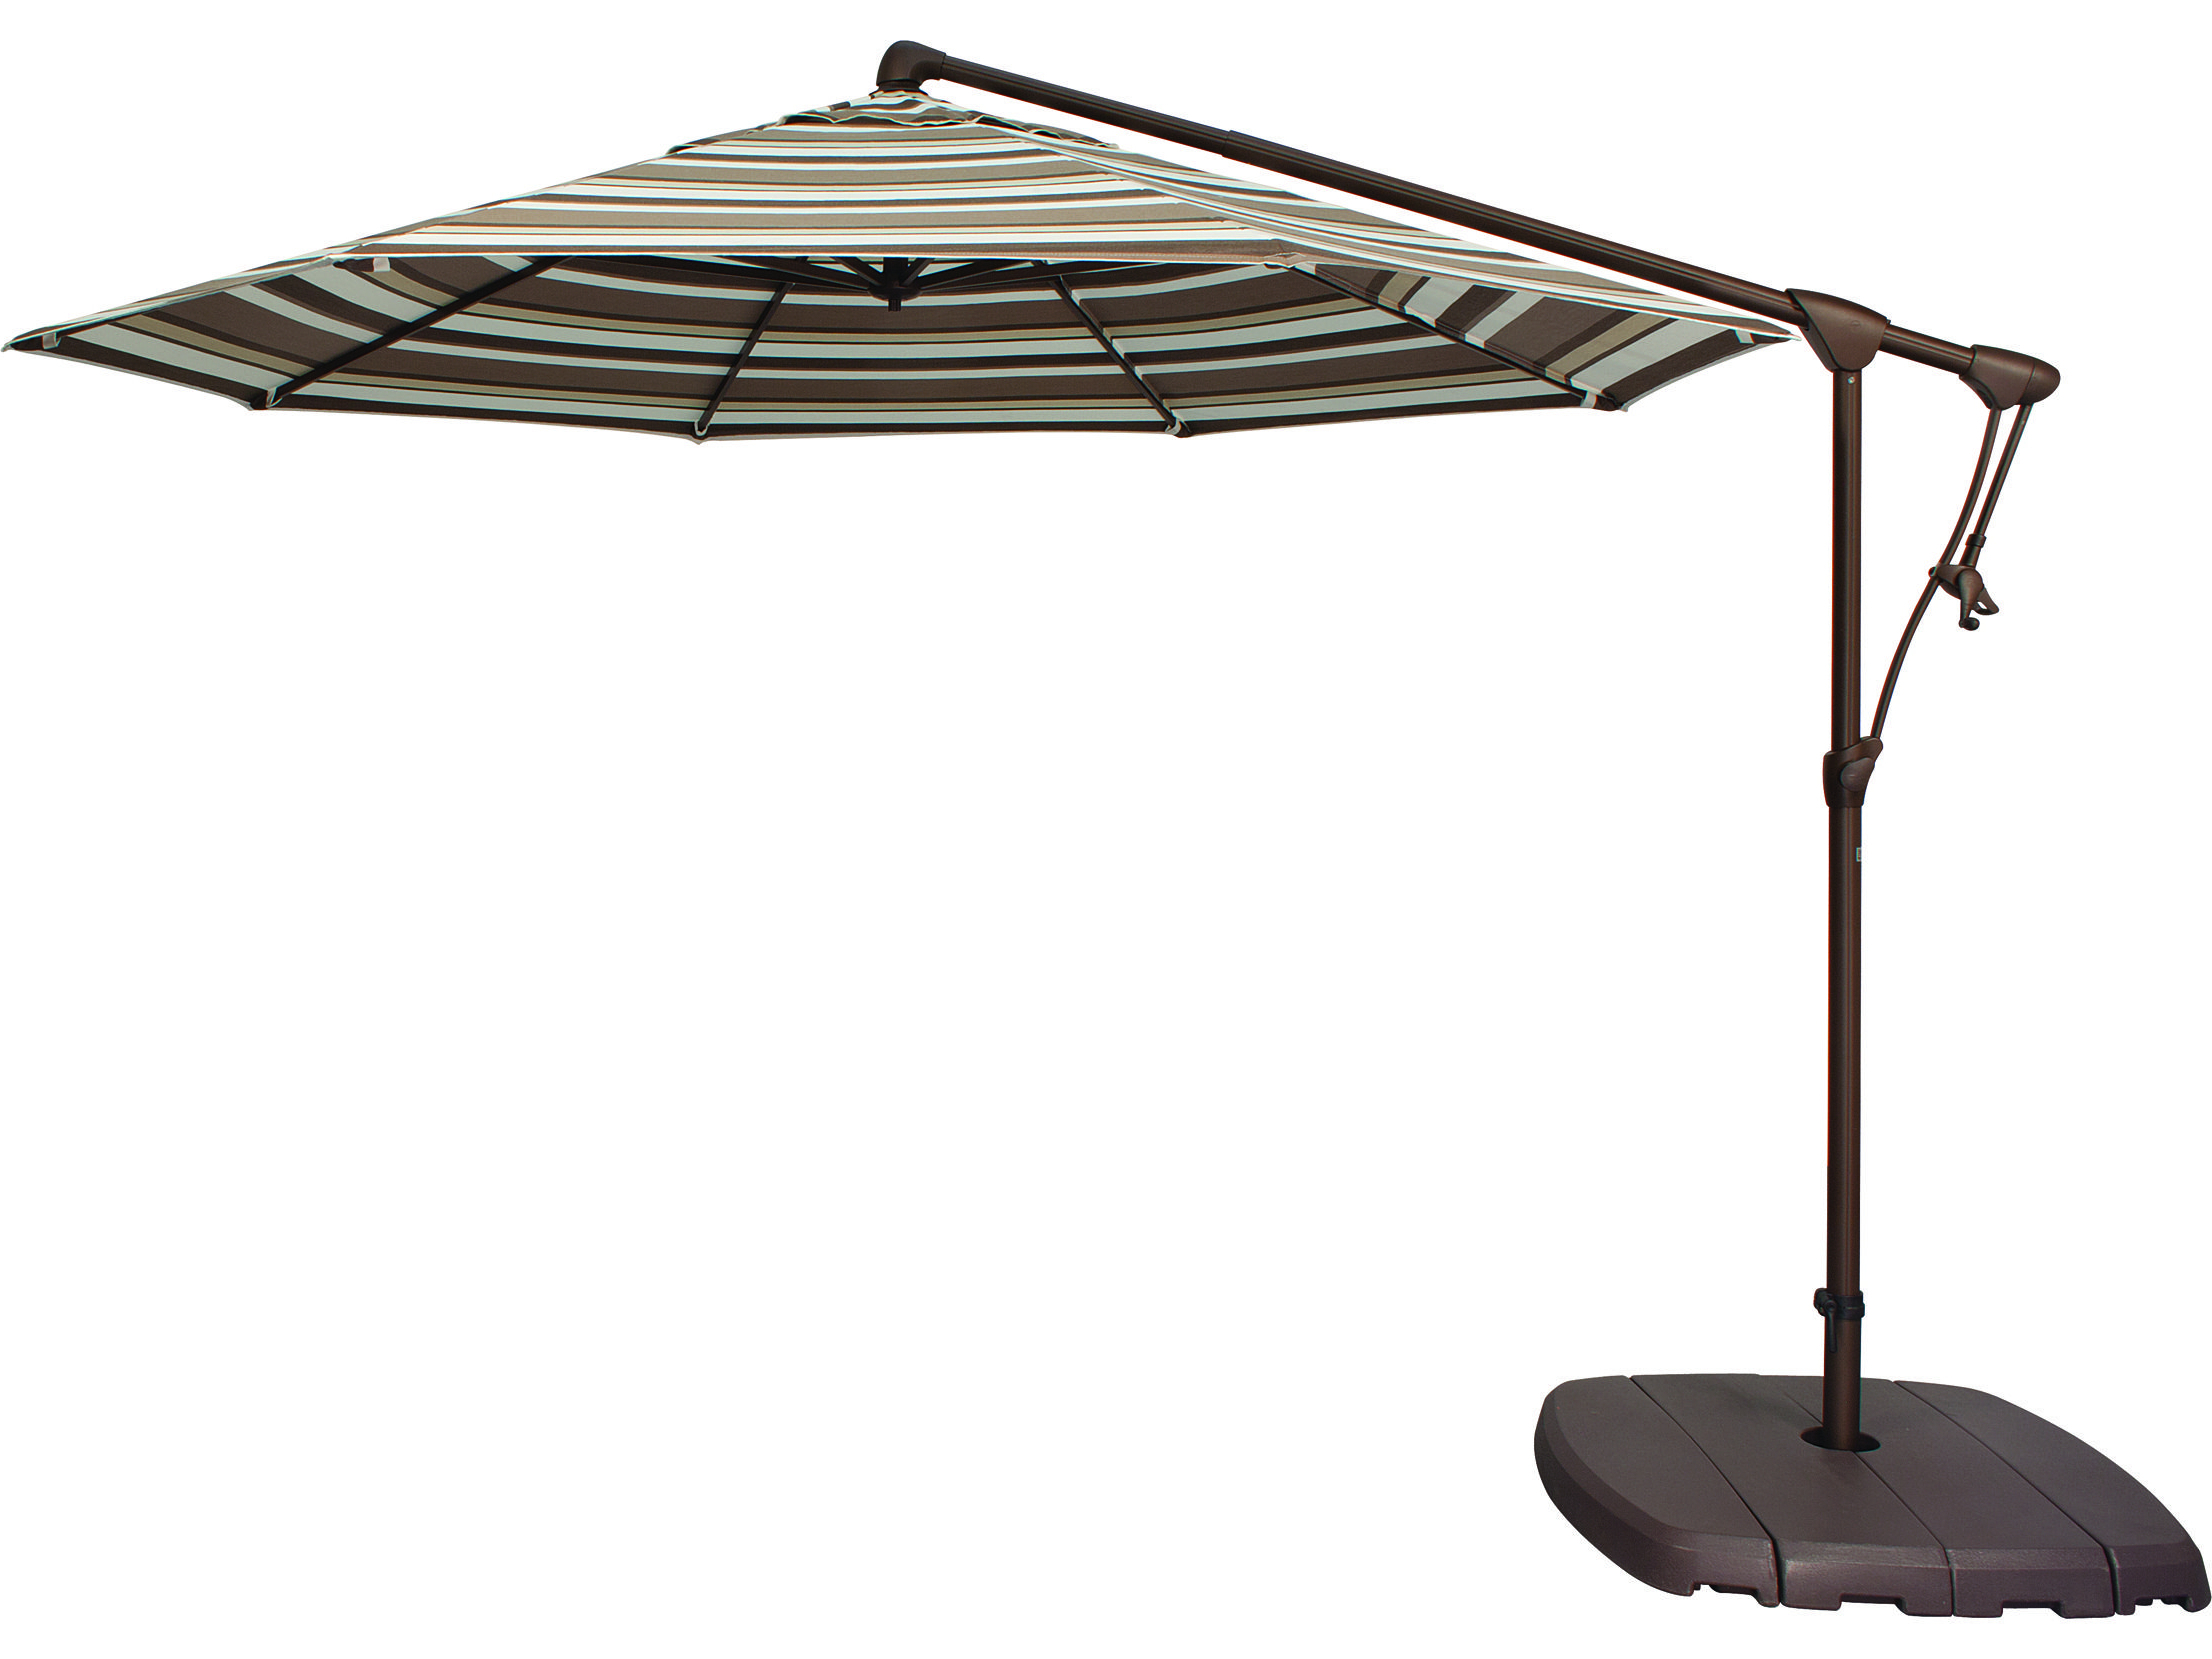 Most Recent Treasure Garden Cantilever Ag19 Aluminum 10' Octagon Tilt & Lock Pertaining To Carlisle Cantilever Sunbrella Umbrellas (View 16 of 20)